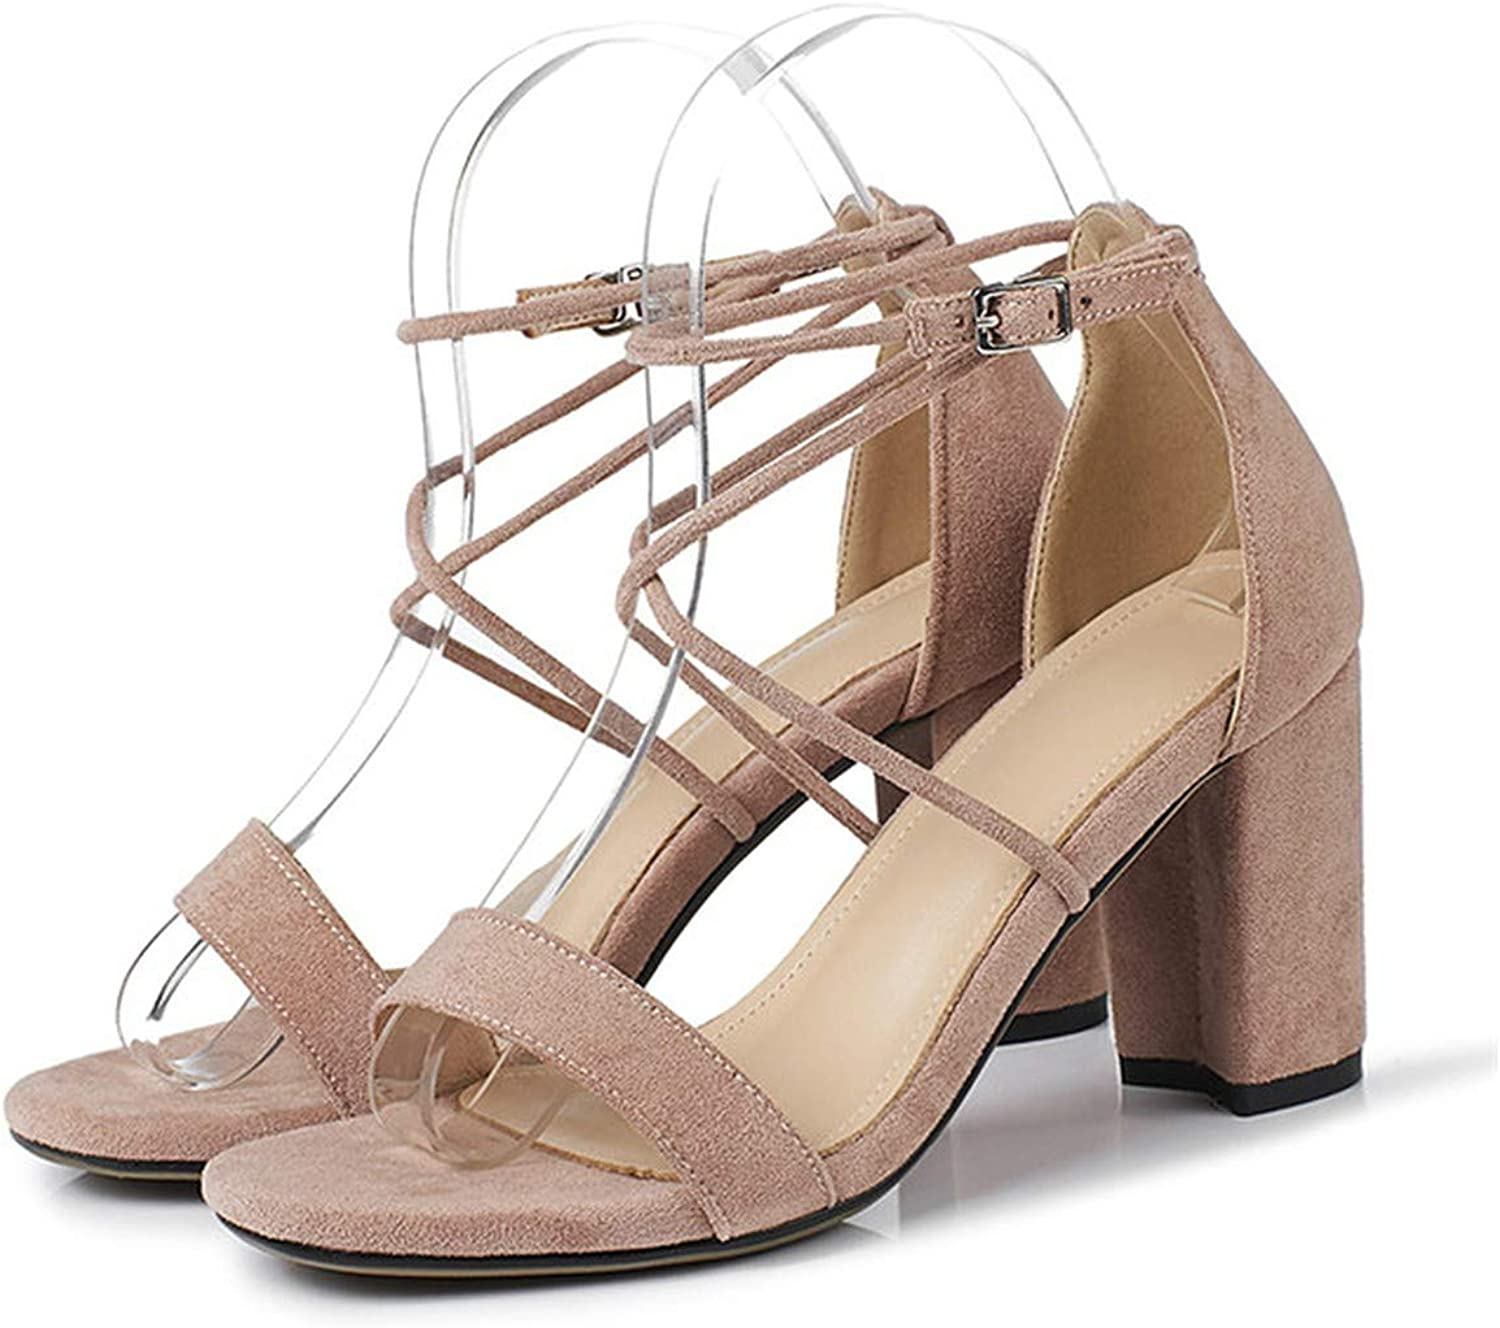 Summer Sandals Women shoes Cross-Tied Block High Heels shoes Sexy Buckle Open Toe Party Sandals,Pink,5